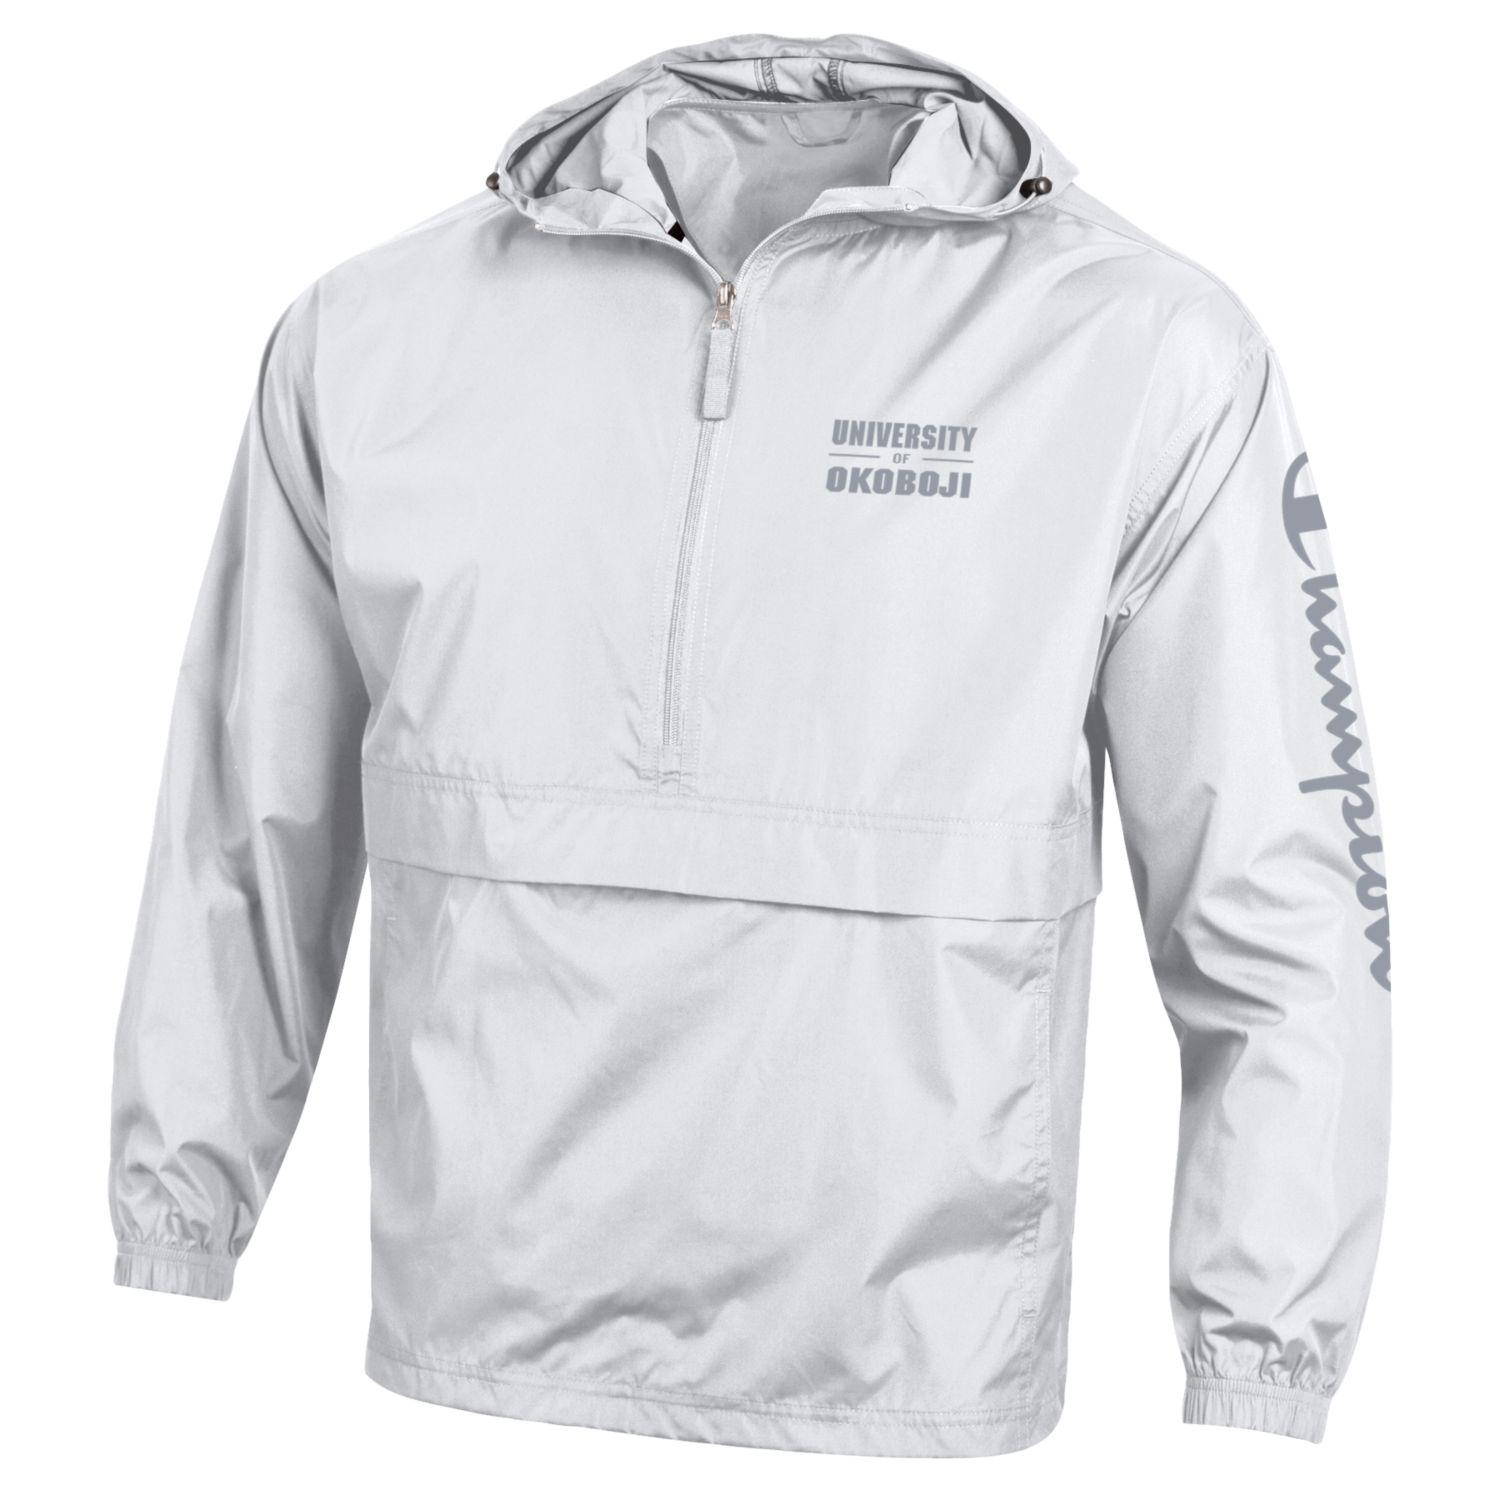 CHAMPION Pack N Go OKOBOJI Jacket - White